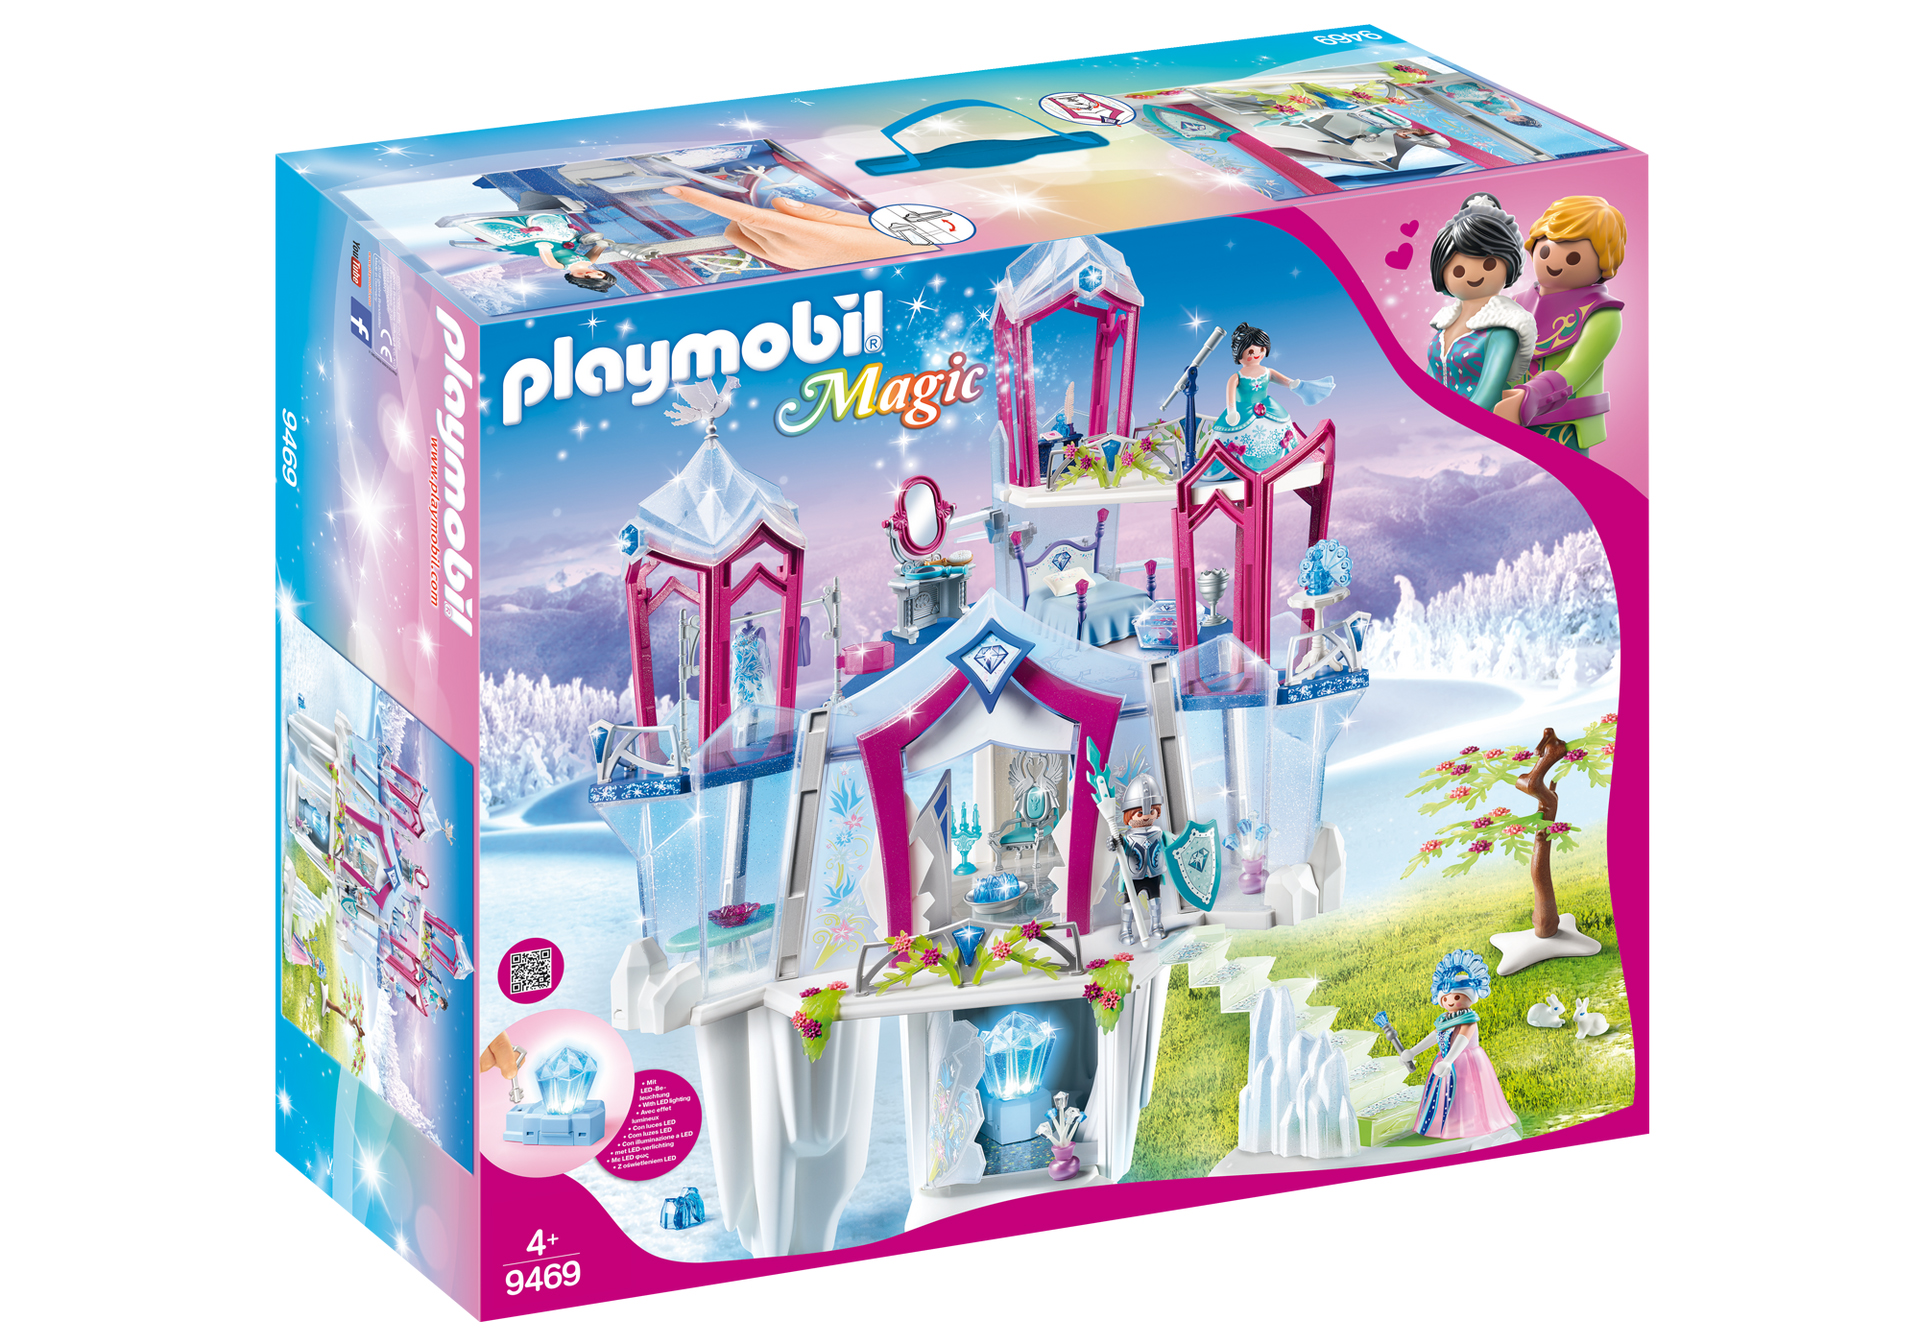 Playmobil Magic: Sparkling Crystal Palace 9469